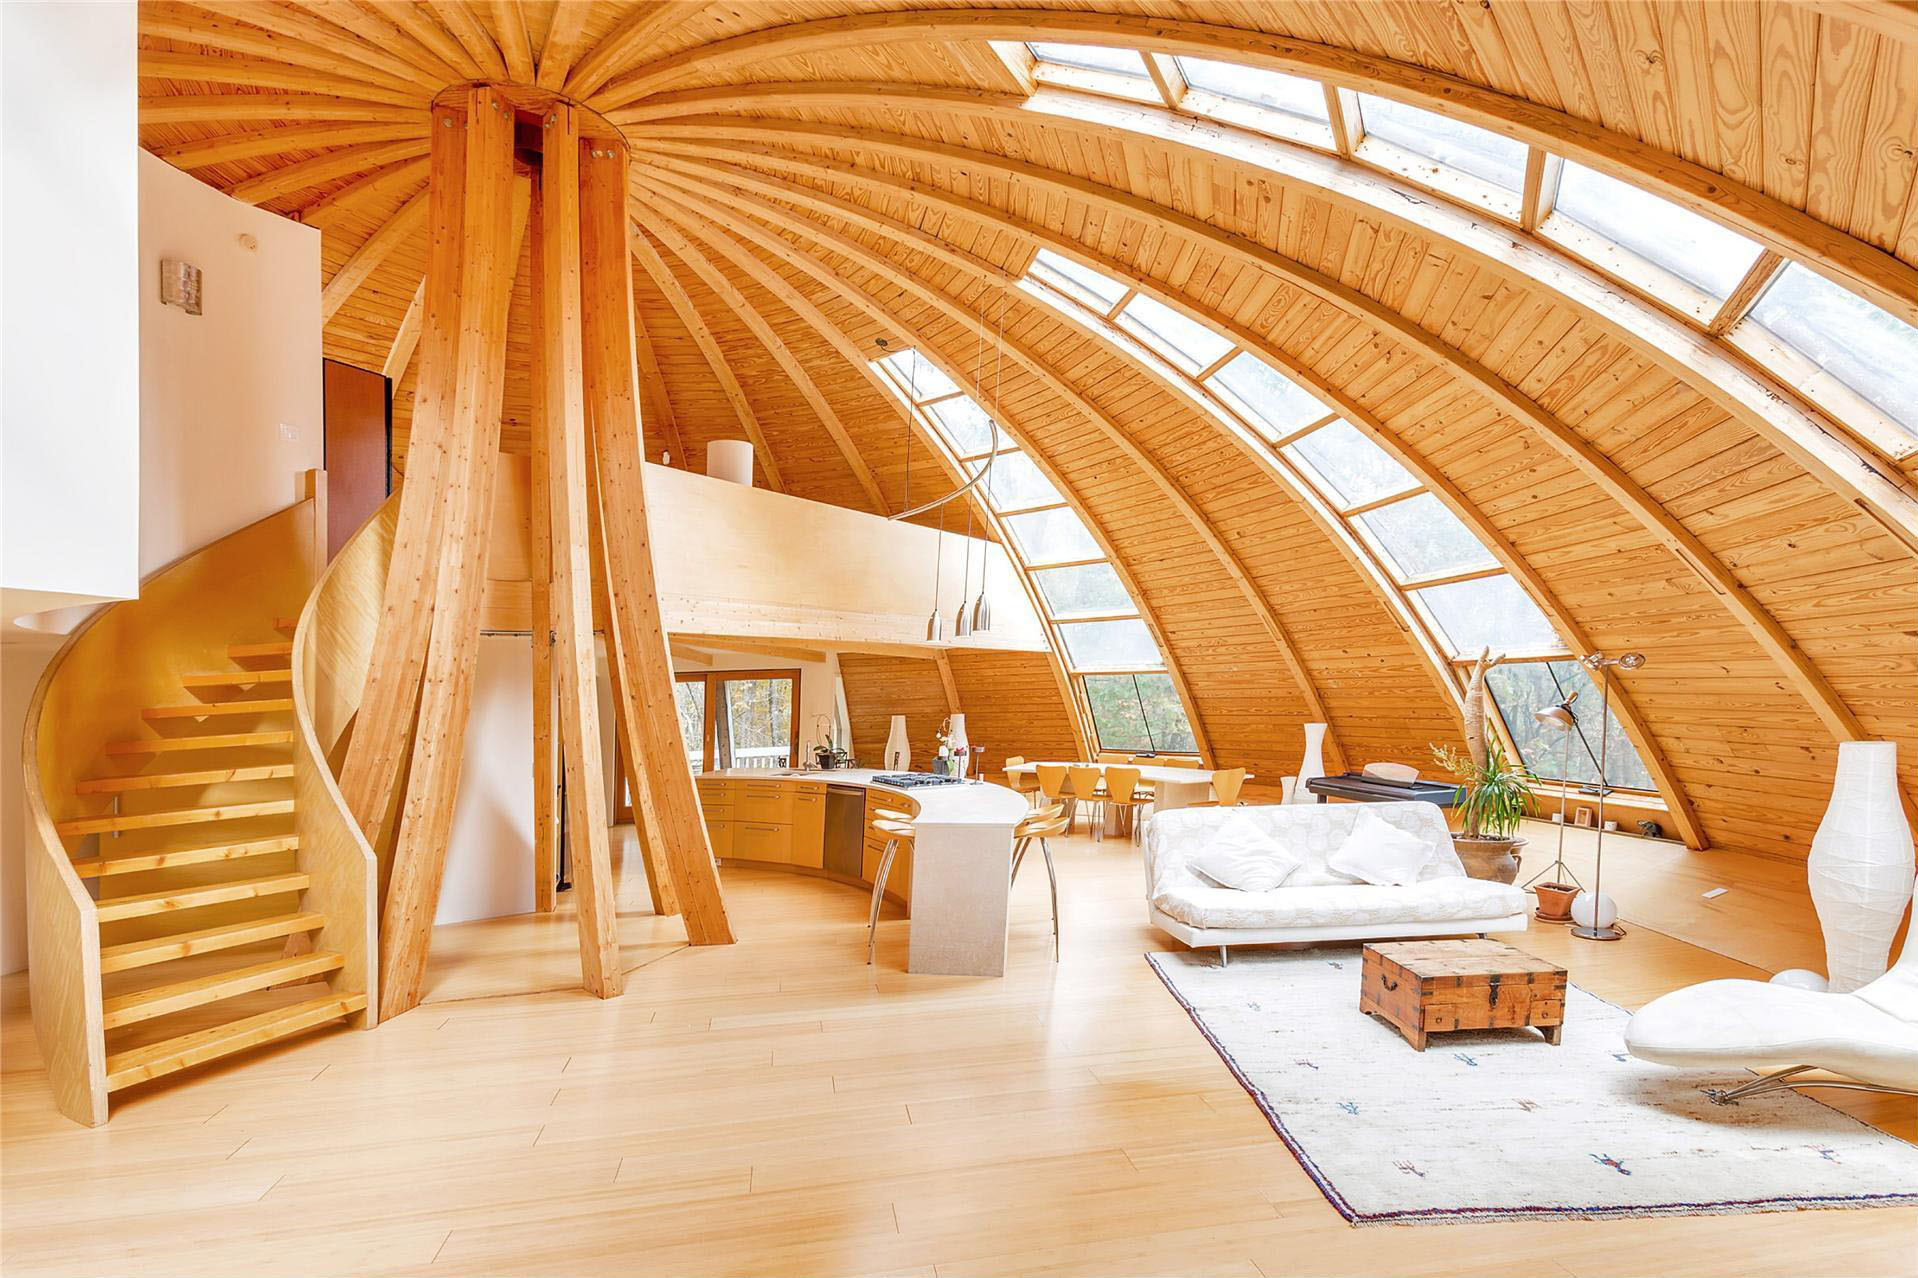 Sensational Flying Saucer Shaped House Takes Design To New Heights Download Free Architecture Designs Xerocsunscenecom